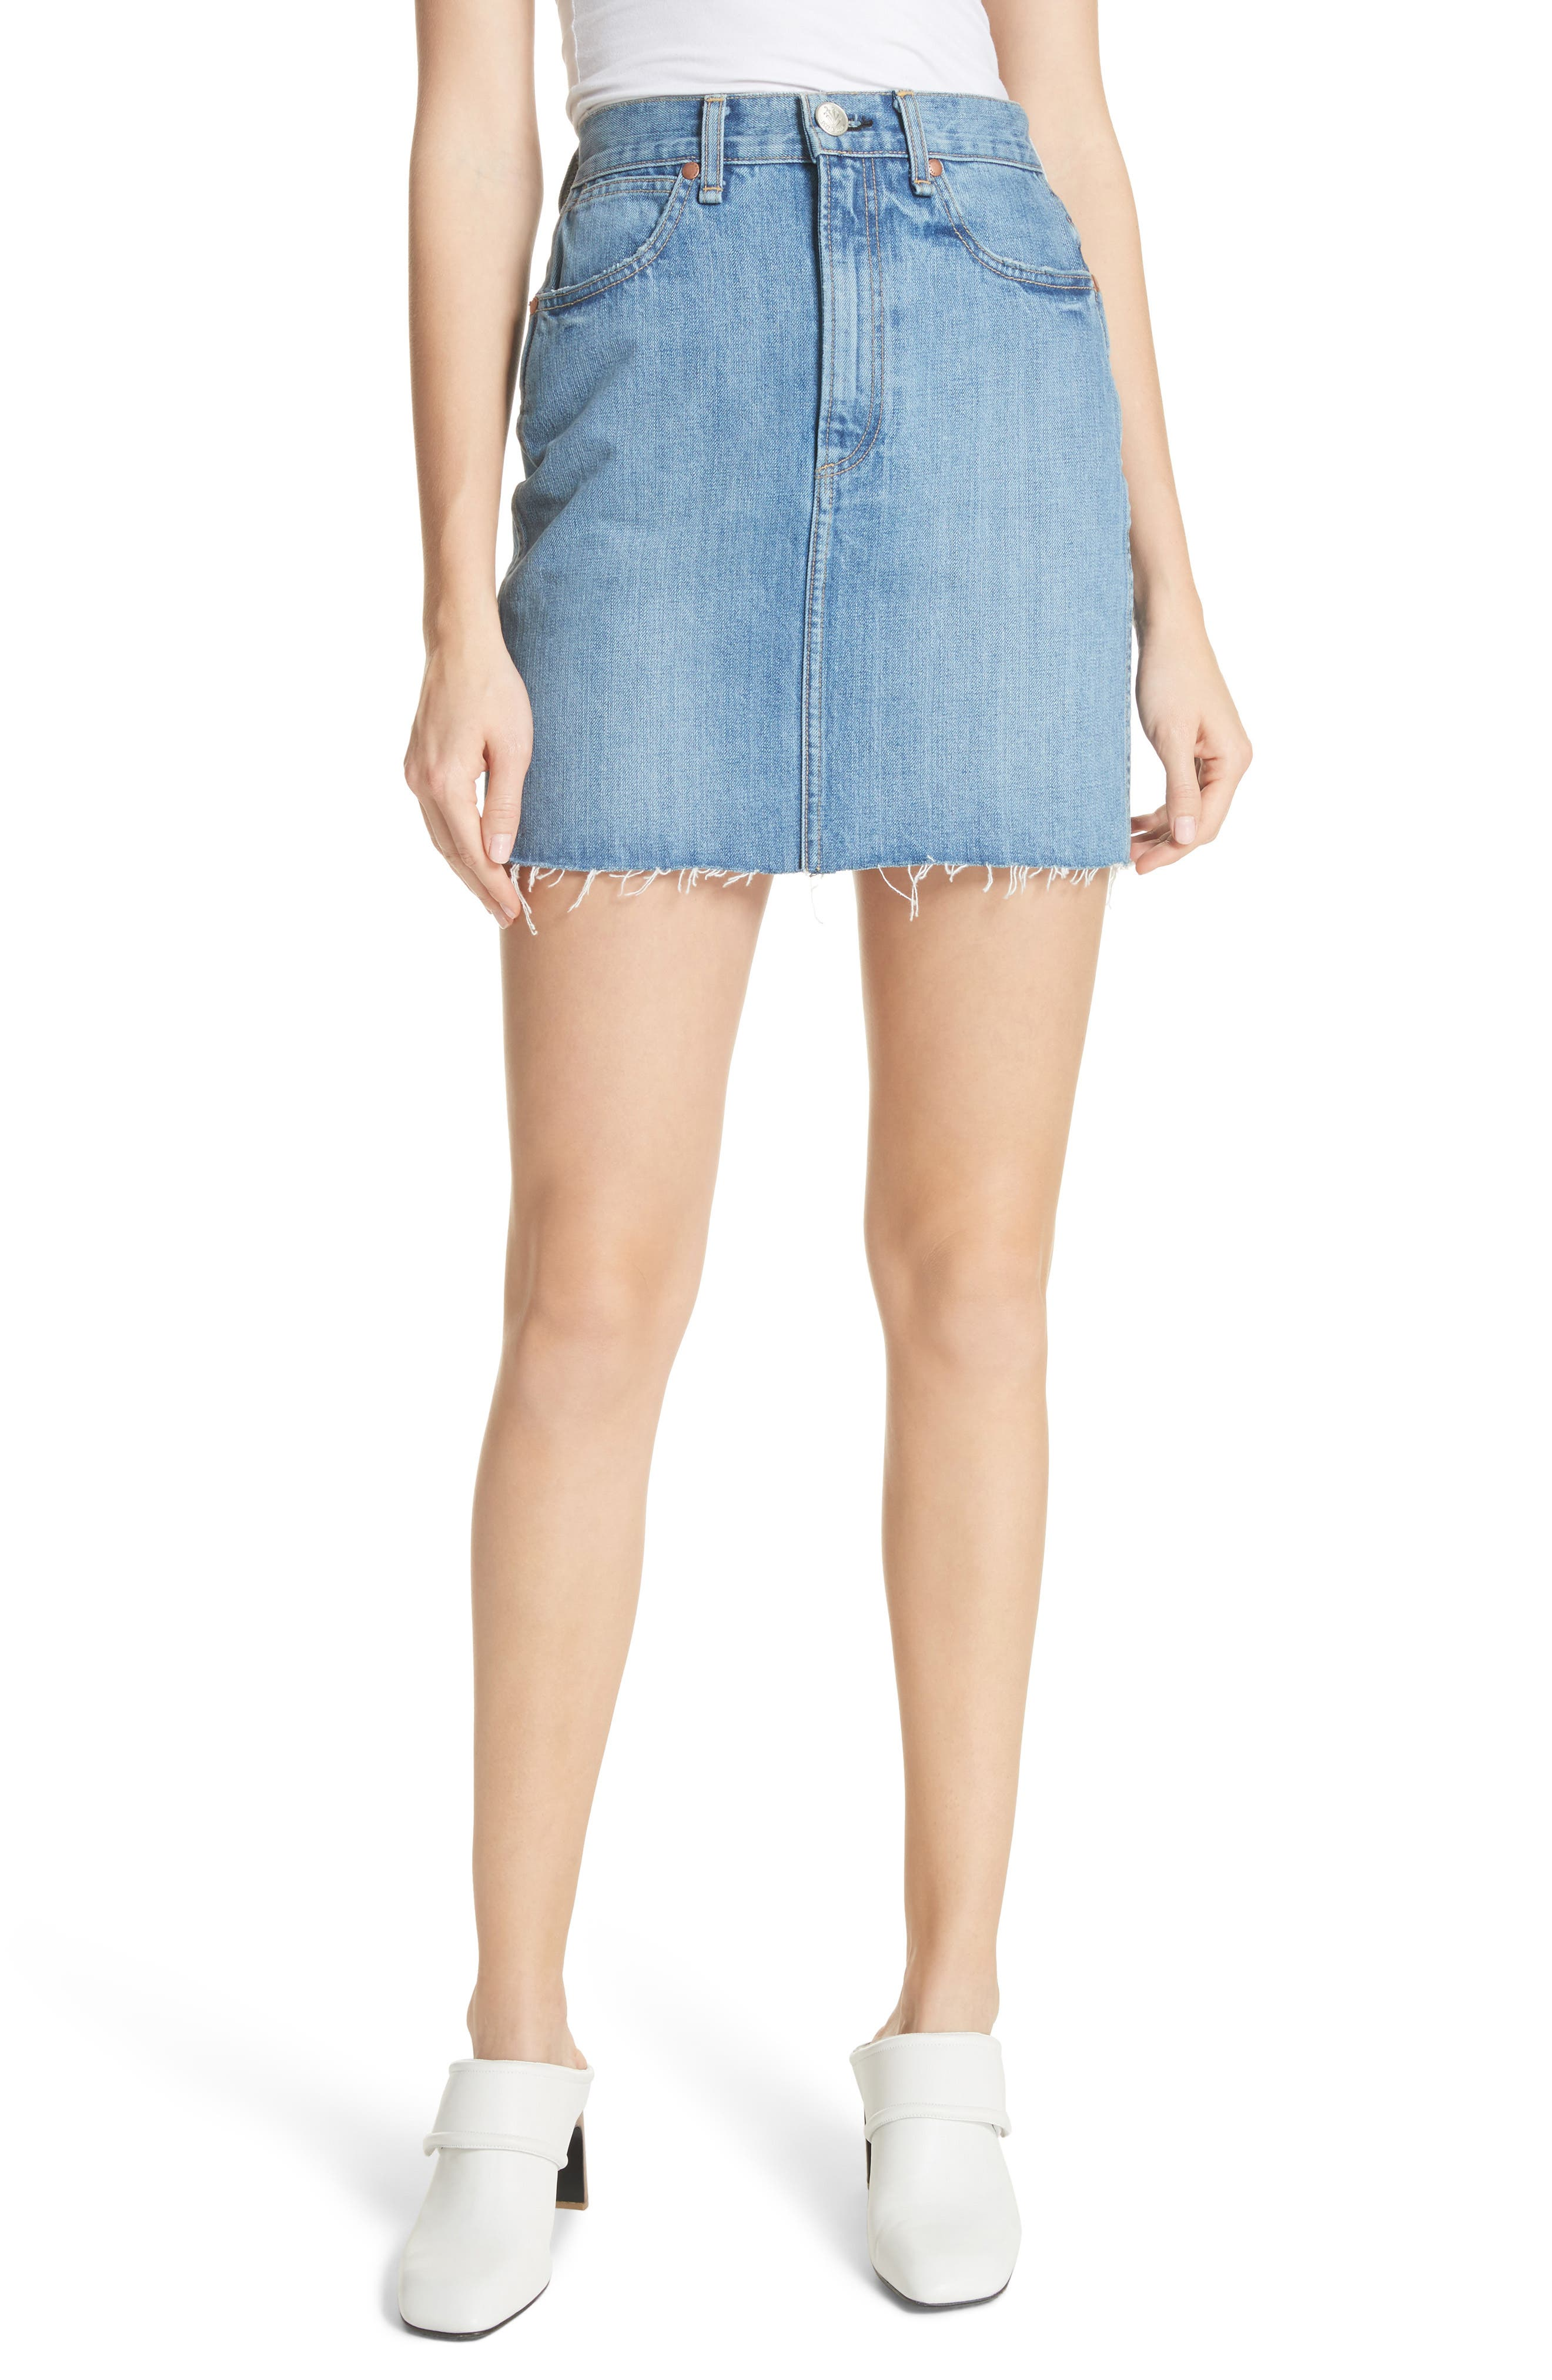 Moss High Waist Denim Miniskirt,                         Main,                         color, 420